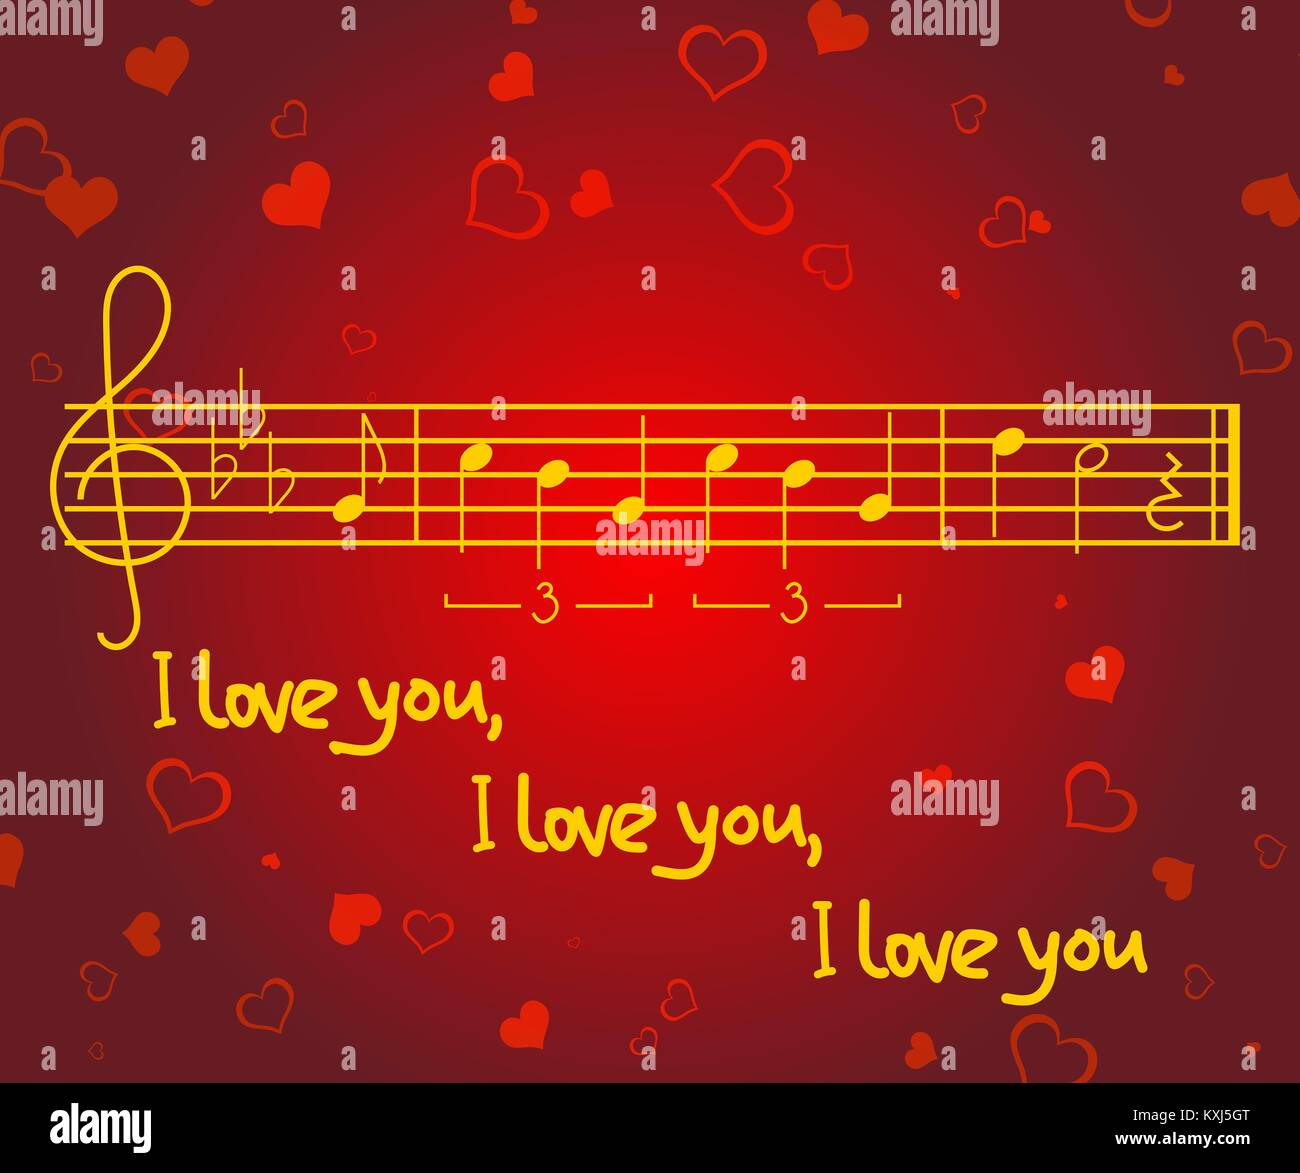 romantic greeting card for valentine s day with heart shapes music